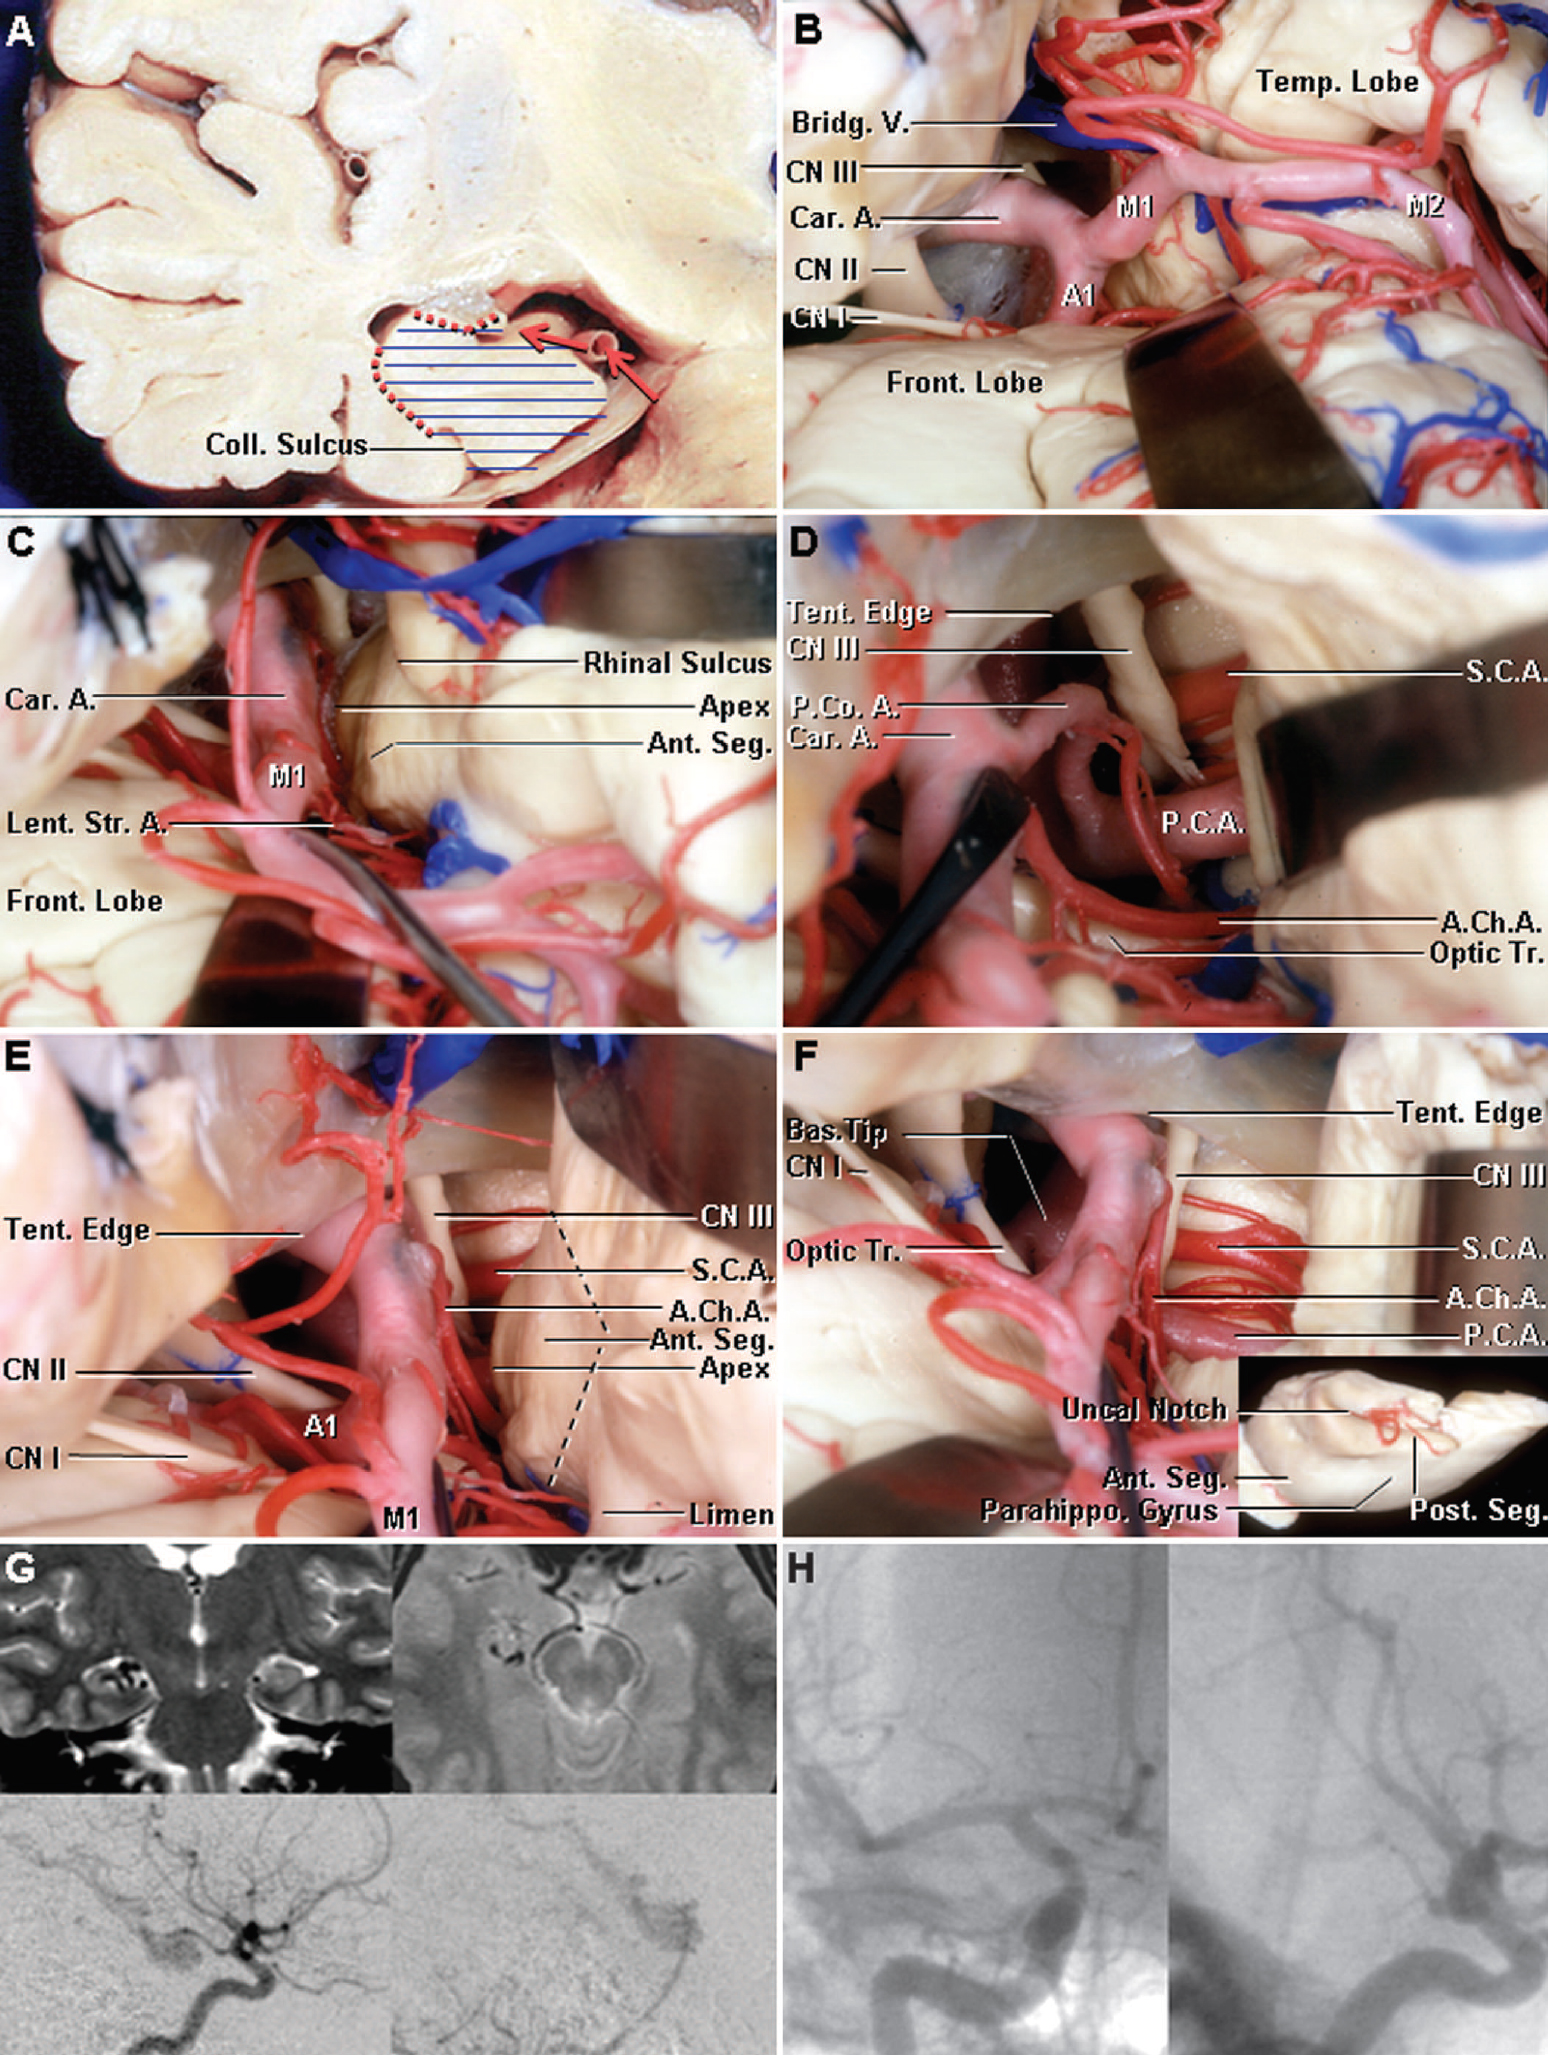 Figure 10. Images showing the transsylvian-transcisternal approach. A, coronal cut through the right temporal lobe showing the route of the approach (red arrows). After widely opening the sylvian fissure and chiasmatic, carotid, interpeduncular, and crural cisterns, the uncus of temporal lobe is removed and the temporal horn is accessed. For epilepsy, the selective disconnection will be through the choroidal fissure medially and through the collateral eminence and collateral sulcus laterally. The amygdala, uncus, hippocampus, and parahippocampal gyrus are removed (horizontal blue lines). B–F, stepwise cadaveric dissection showing the transsylvian transcisternal approach. B, right sylvian and pretemporal exposure. The bridging veins passing from the temporal pole to the sphenoparietal or cavernous sinuses are divided to allow mobilization of the medial temporal lobe. C, the sylvian fissure has been opened widely and the M1 segment of the middle cerebral artery has been elevated to expose the anterior segment of the uncus. The lenticulostriate arteries are preserved carefully. D, the arachnoid fibers between the uncus, oculomotor nerve, and the vessels in the carotid and crural cisterns have been divided to expose the anterior choroidal, posterior communicating, superior cerebellar, and posterior cerebral arteries. The optic tract is exposed above the anterior choroidal artery. E, the segment of the uncus medial to a line between the cisternal portion of the anterior choroidal artery and rhinal sulcus is exposed along the line of the planned resection (interrupted line). F, the uncus, amygdala, and head and anterior part of the body of the hippocampus have been removed. The temporal horn is accessed from anterior and medially. The insert shows the medial surface of the resected medial temporal lobe, including the anterior and posterior segment of the uncus and the uncal notch. G, preoperative magnetic resonance imaging scans (upper left, coronal; upper right, axial) and lateral views of a (lower left) carotid and (lower right) vertebral angiograms of a 29-year-old man, disclosing an arteriovenous malformation in the anterior portion of the right medial temporal lobe. H, postoperative (left) anteroposterior and (right) lateral carotid angiogram after a transsylvian transcisternal approach revealing no residual lesion. A1, segment of the anterior cerebral artery; A., artery; A.Ch.A., anterior choroidal artery; Ant., anterior; Bas., basilar; Bridg., bridging; Car., carotid; CN, cranial nerve; Coll., collateral; Front., frontal; Lent. Str., lenticulostriate; M1, M2, segments of the middle cerebral artery; Parahippo., parahippocampal; P.C.A., posterior cerebral artery; P.Co.A., posterior communicating artery; Post., posterior; S.C.A., superior cerebellar artery; Seg., segment; Temp., temporal; Tent., tentorial; Tr., tract; V., vein. (Images courtesy of AL Rhoton, Jr.)